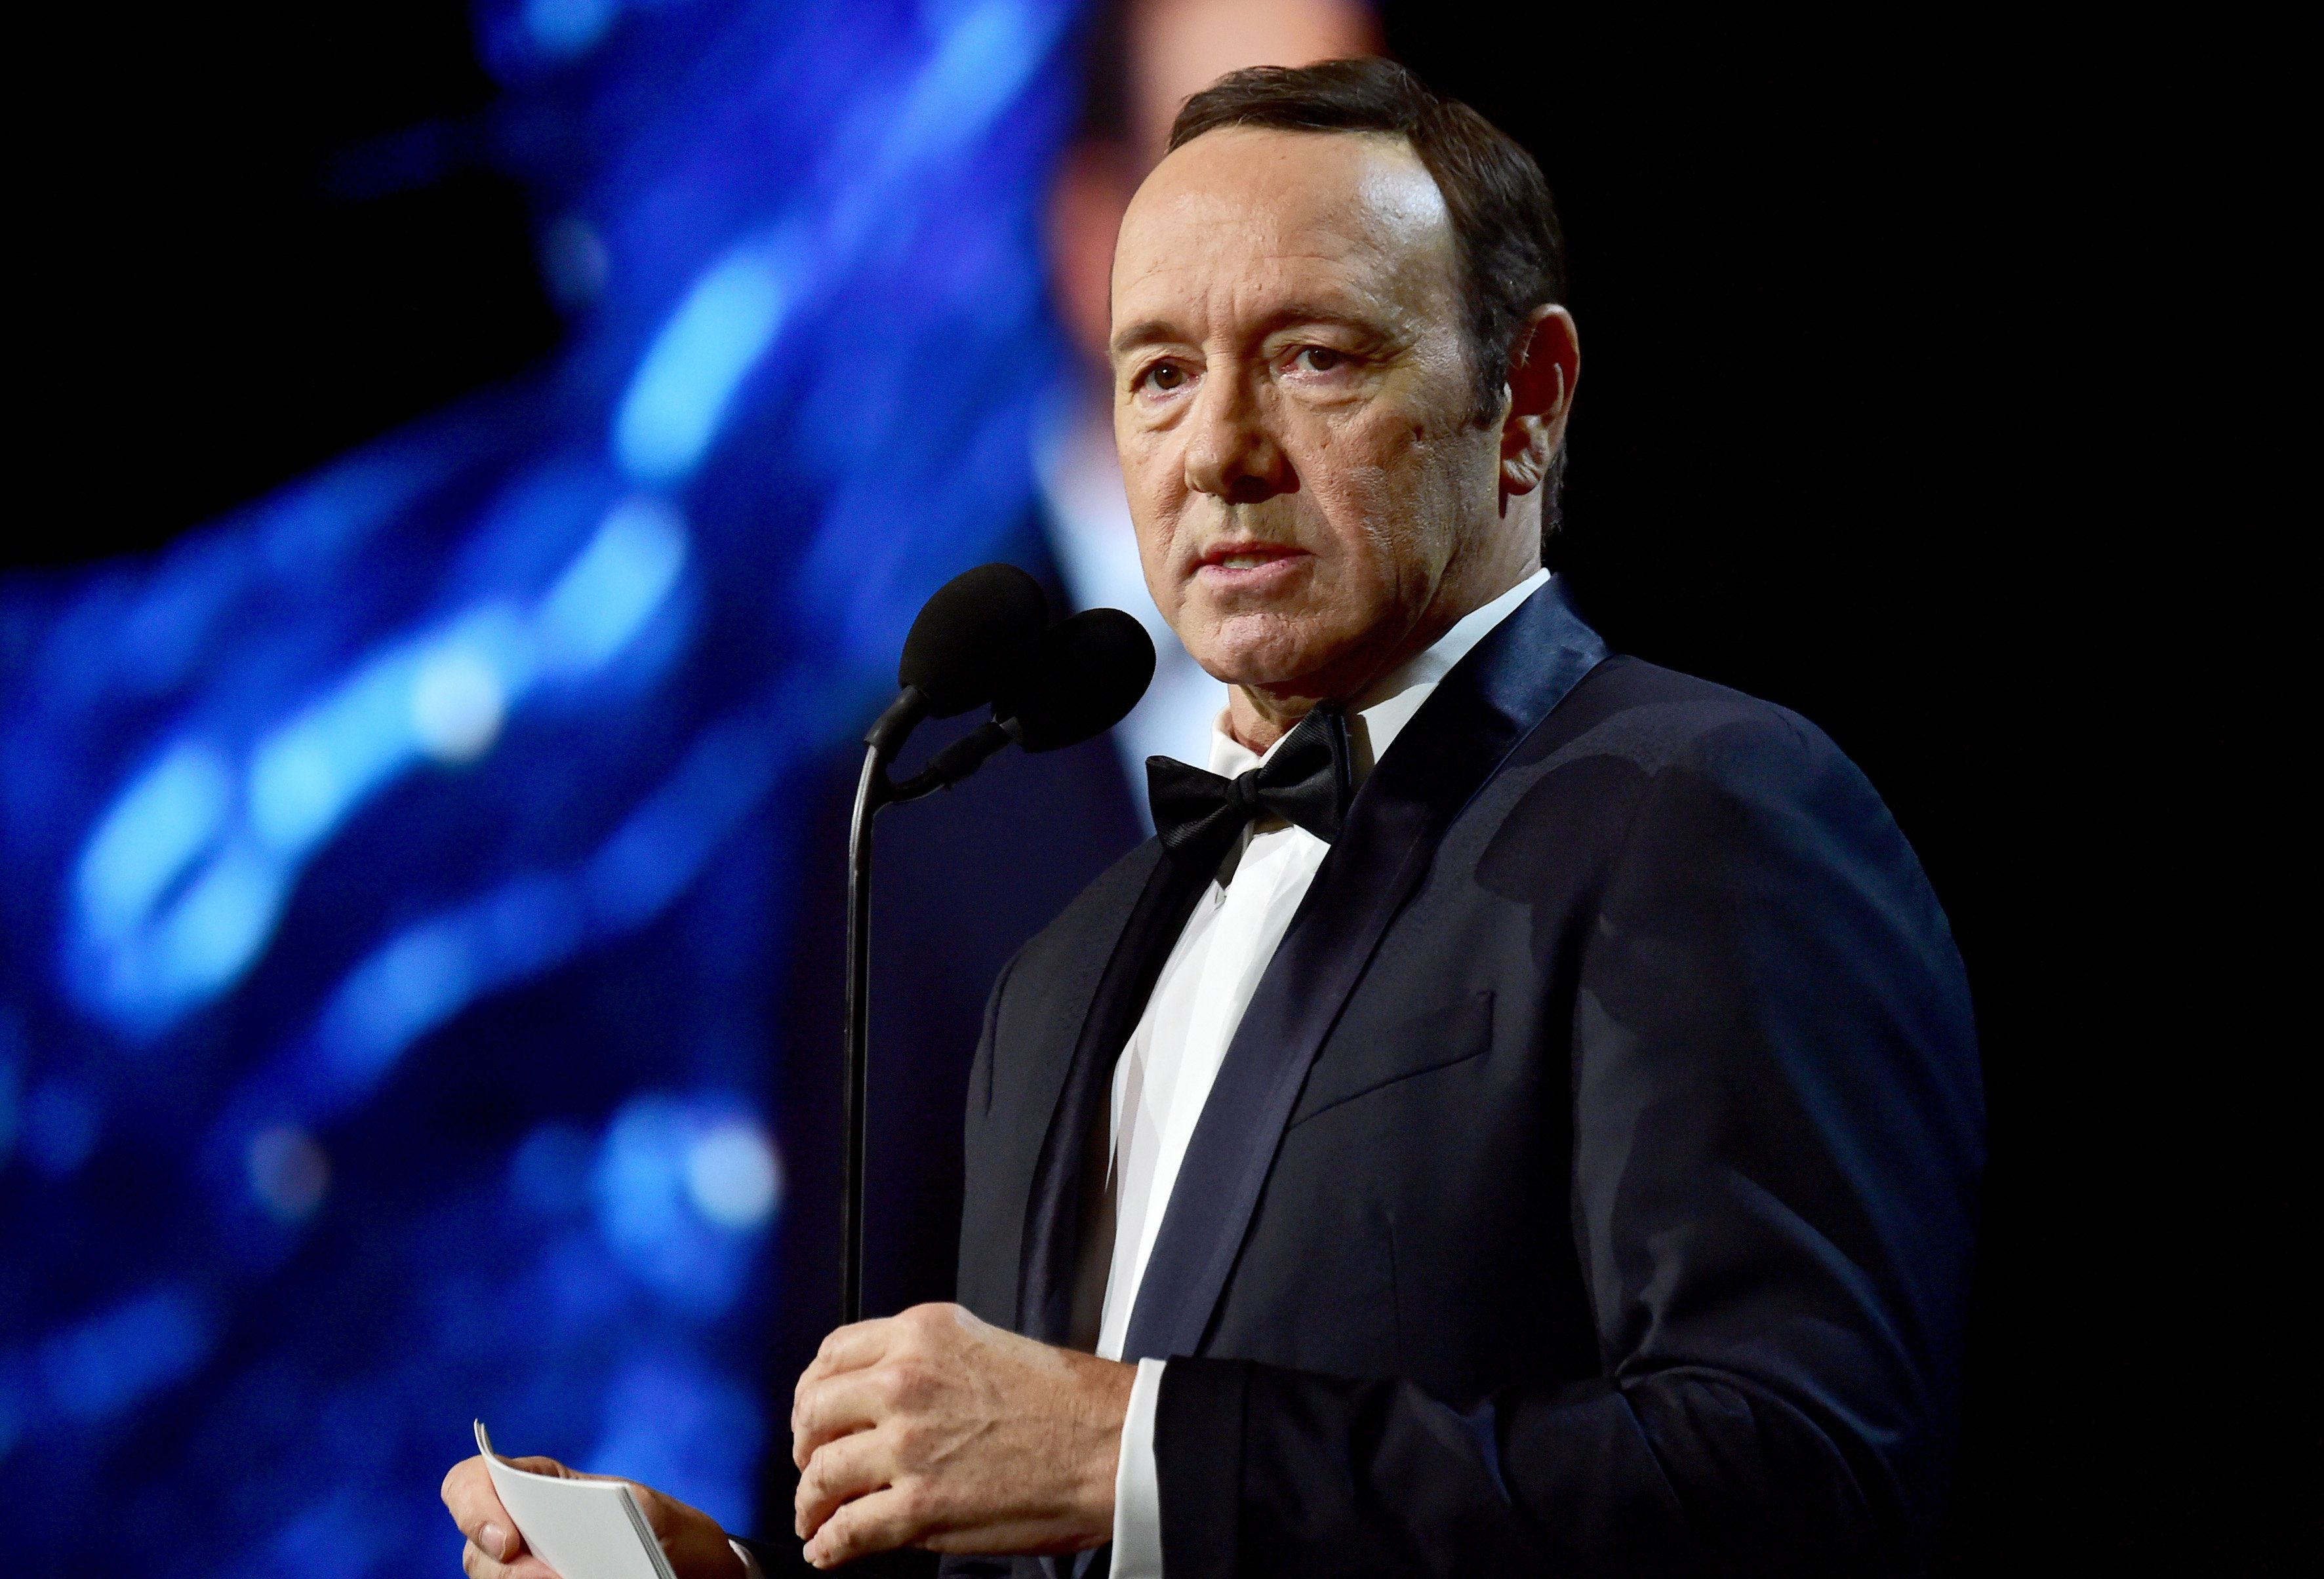 Kevin Spacey Slammed For Coming Out Amid Sexual Harassment